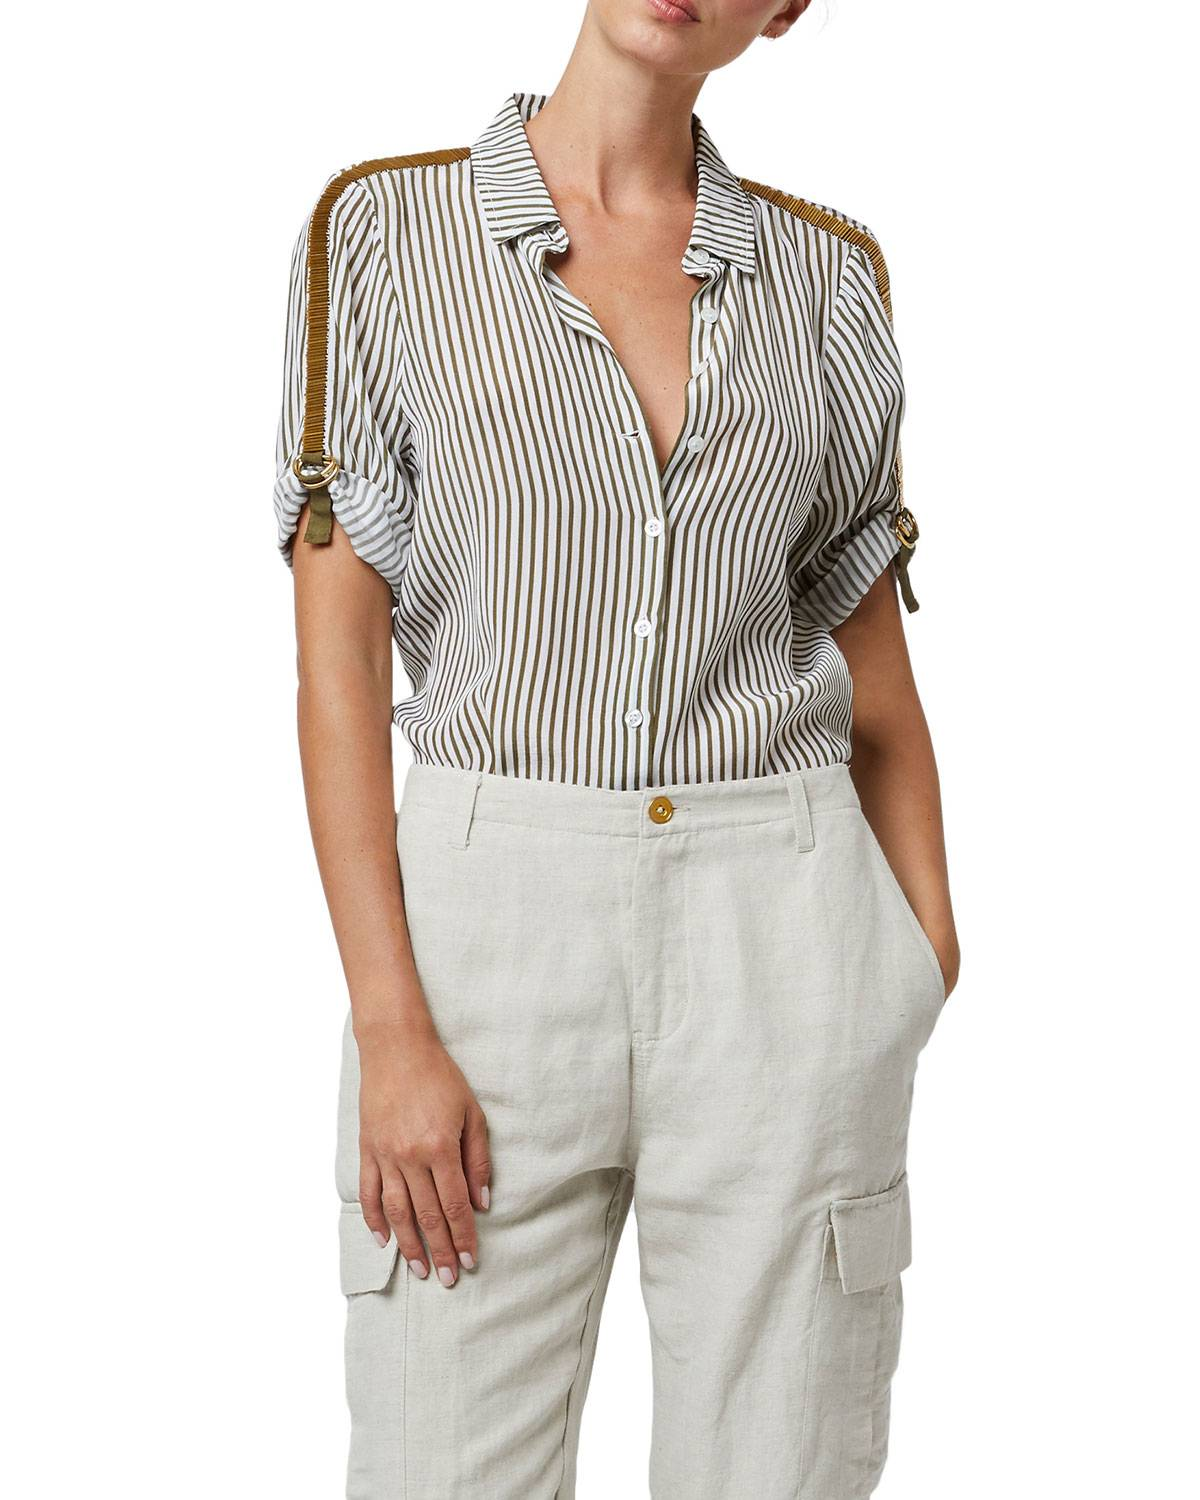 AS by DF Rossellini Blouse - Size: Medium